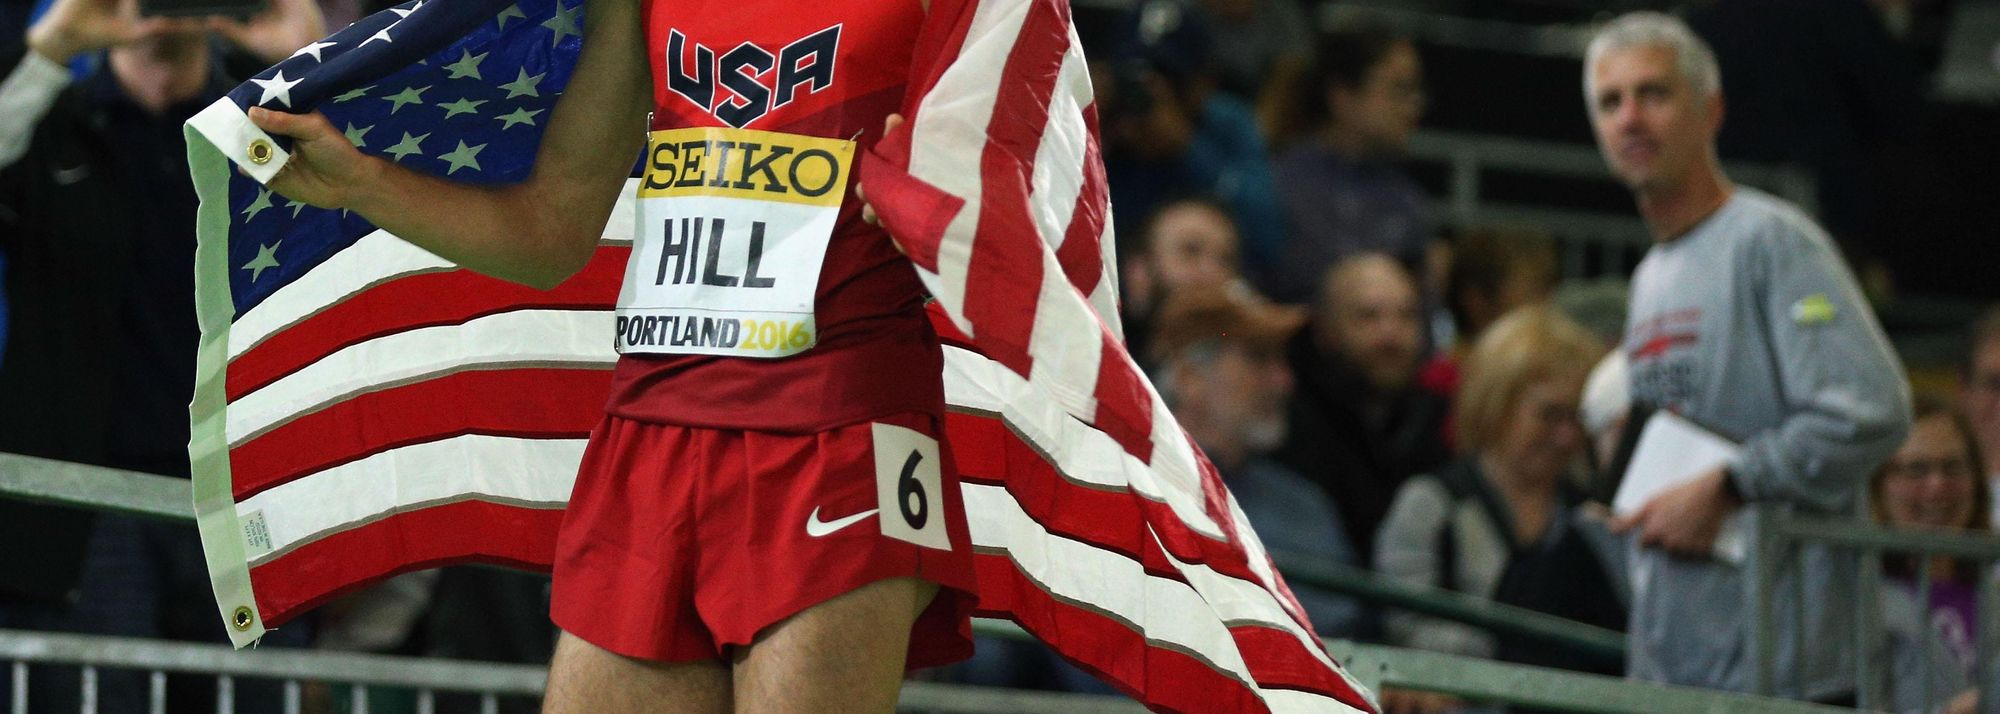 Satisfaction for Ryan Hill after winning the 3000m silver medal at the IAAF World Indoor Championships Portland 2016 lasted just a matter of moments.